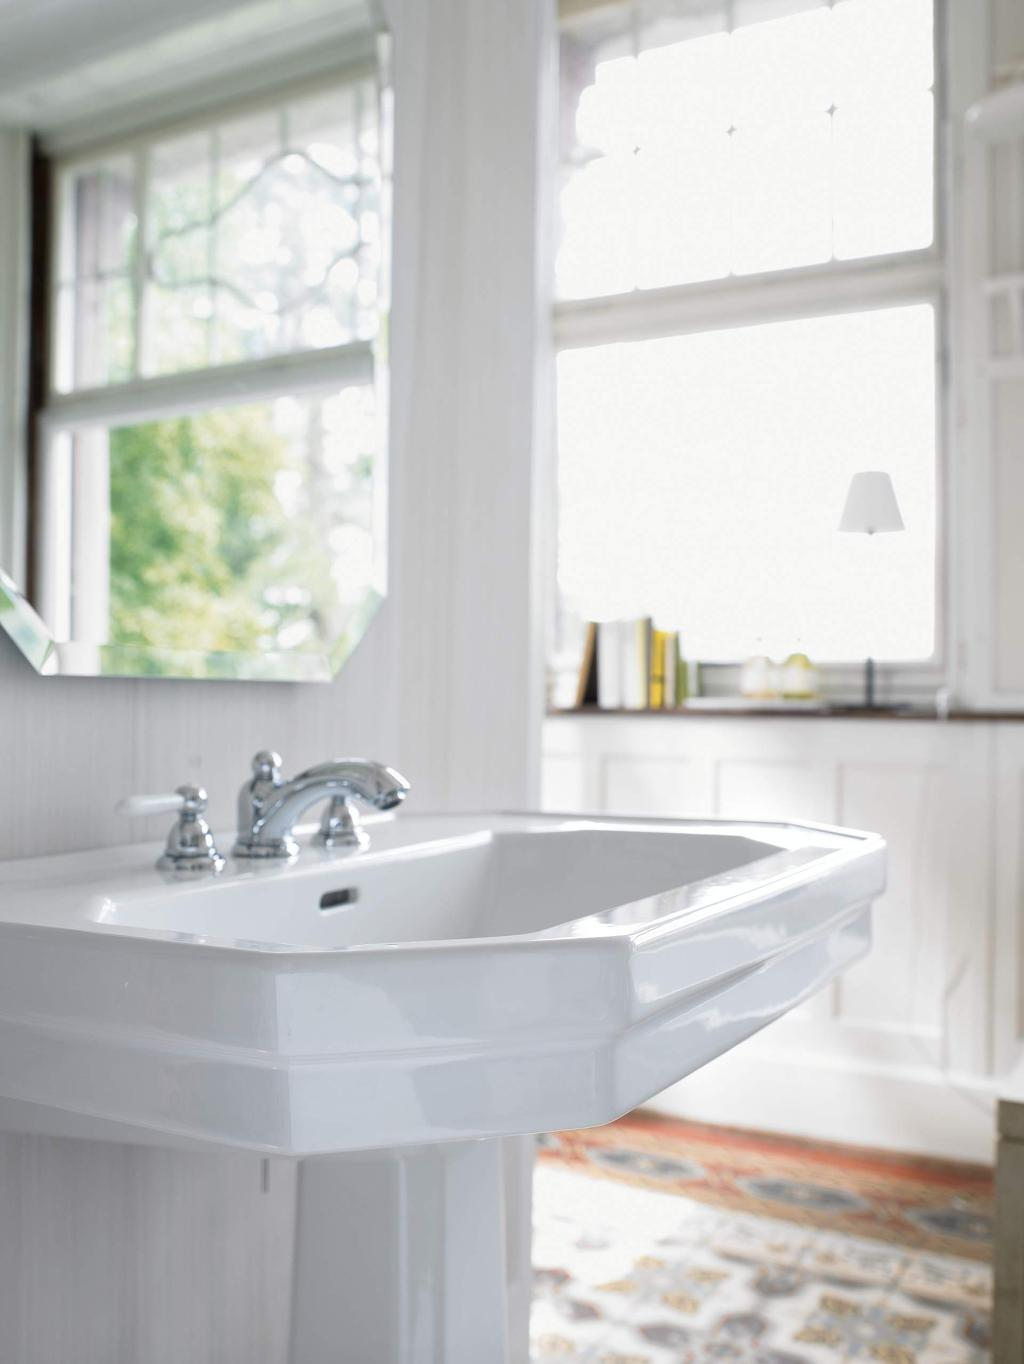 Duravit 1930 Series Toilets Sinks More Duravit